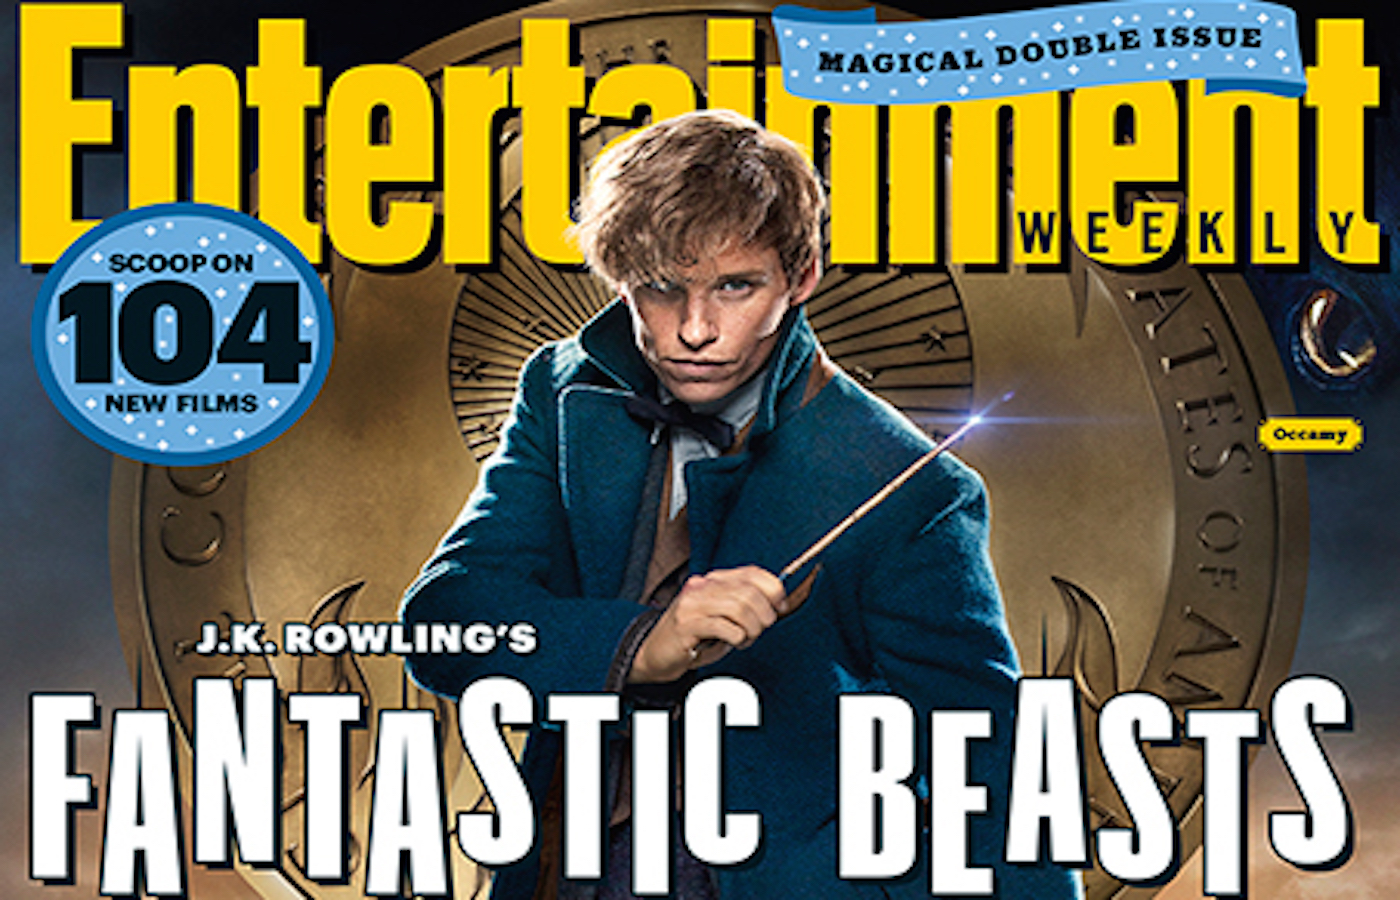 fantastic-beasts-ew-cover-1.jpg